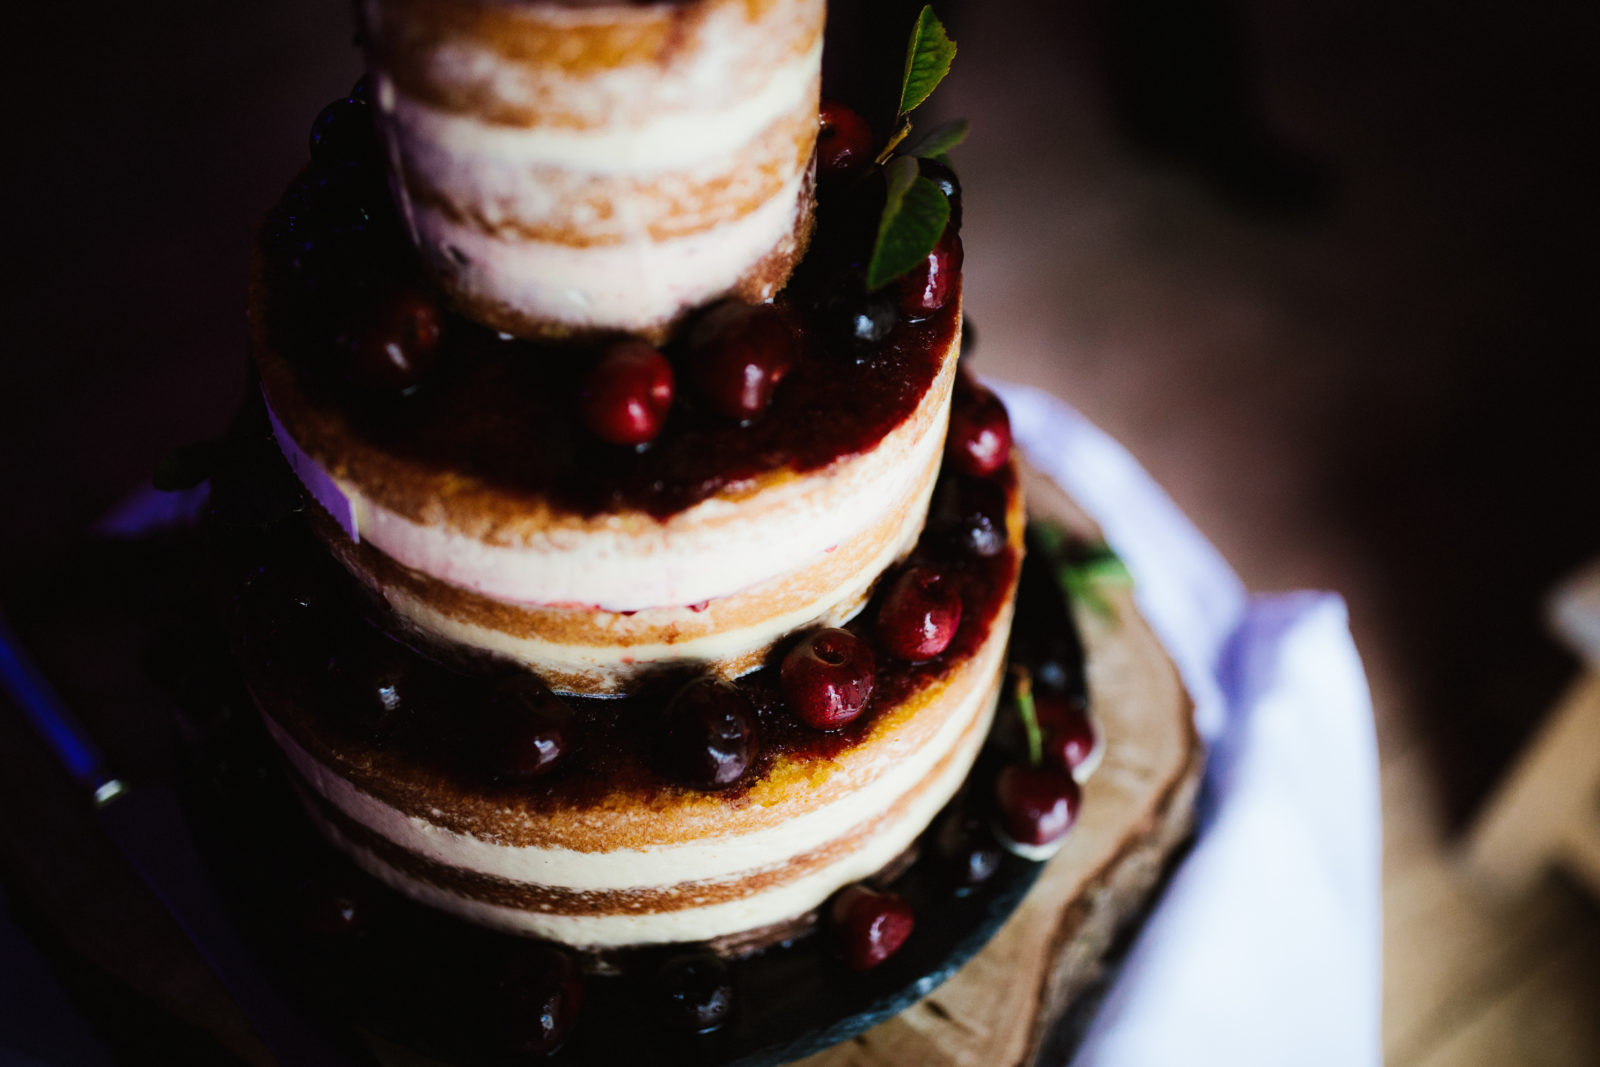 Naked cherry wedding cake